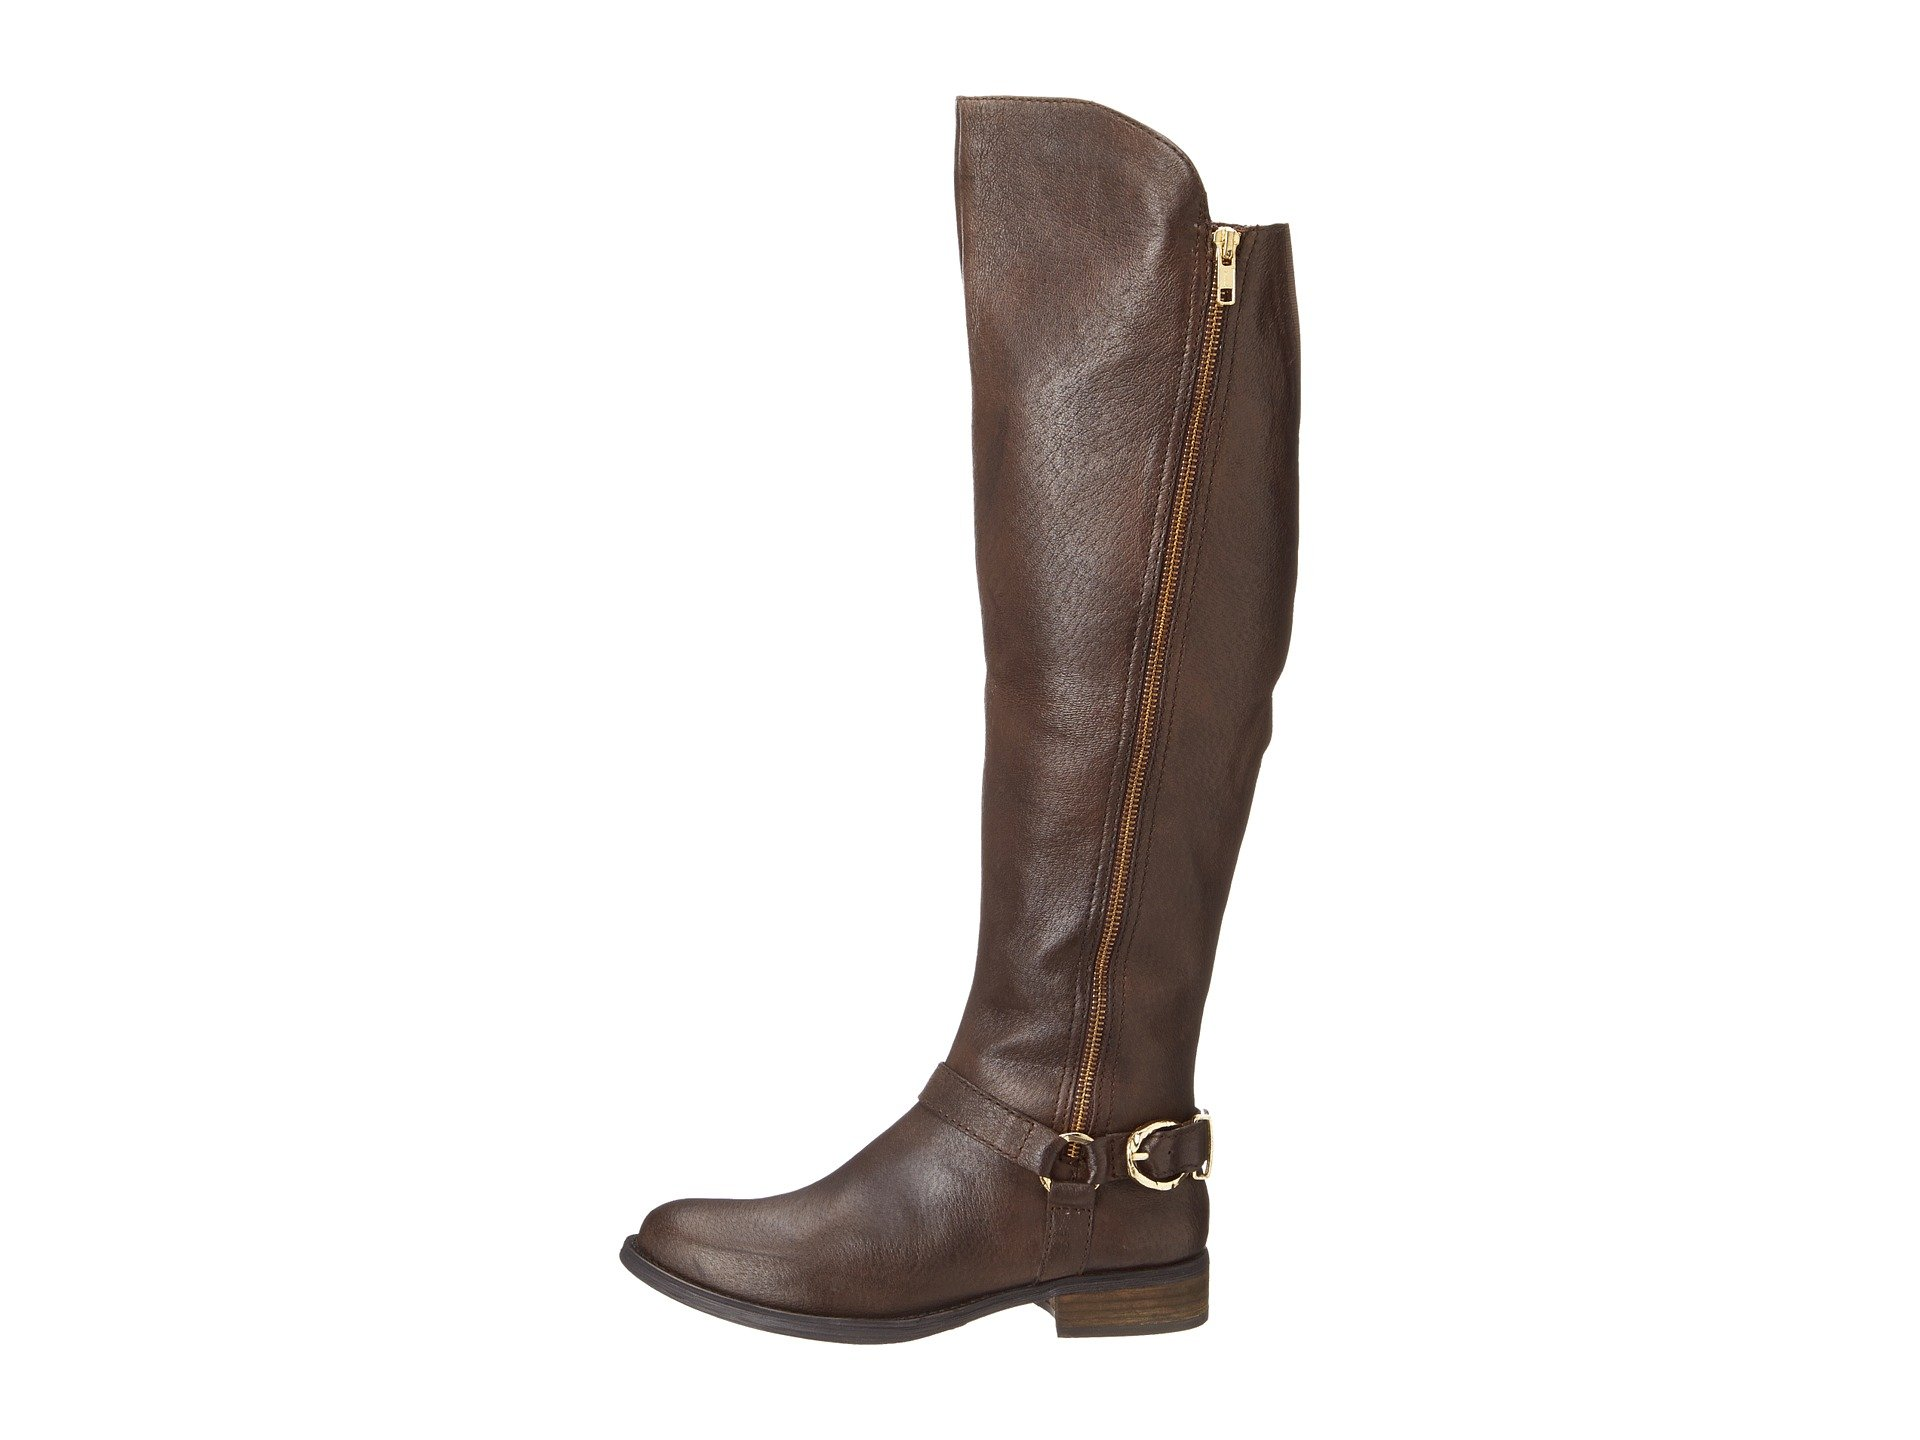 03e2821d07c Lyst - Steve Madden Skippur Leather Tall Riding Boots in Brown